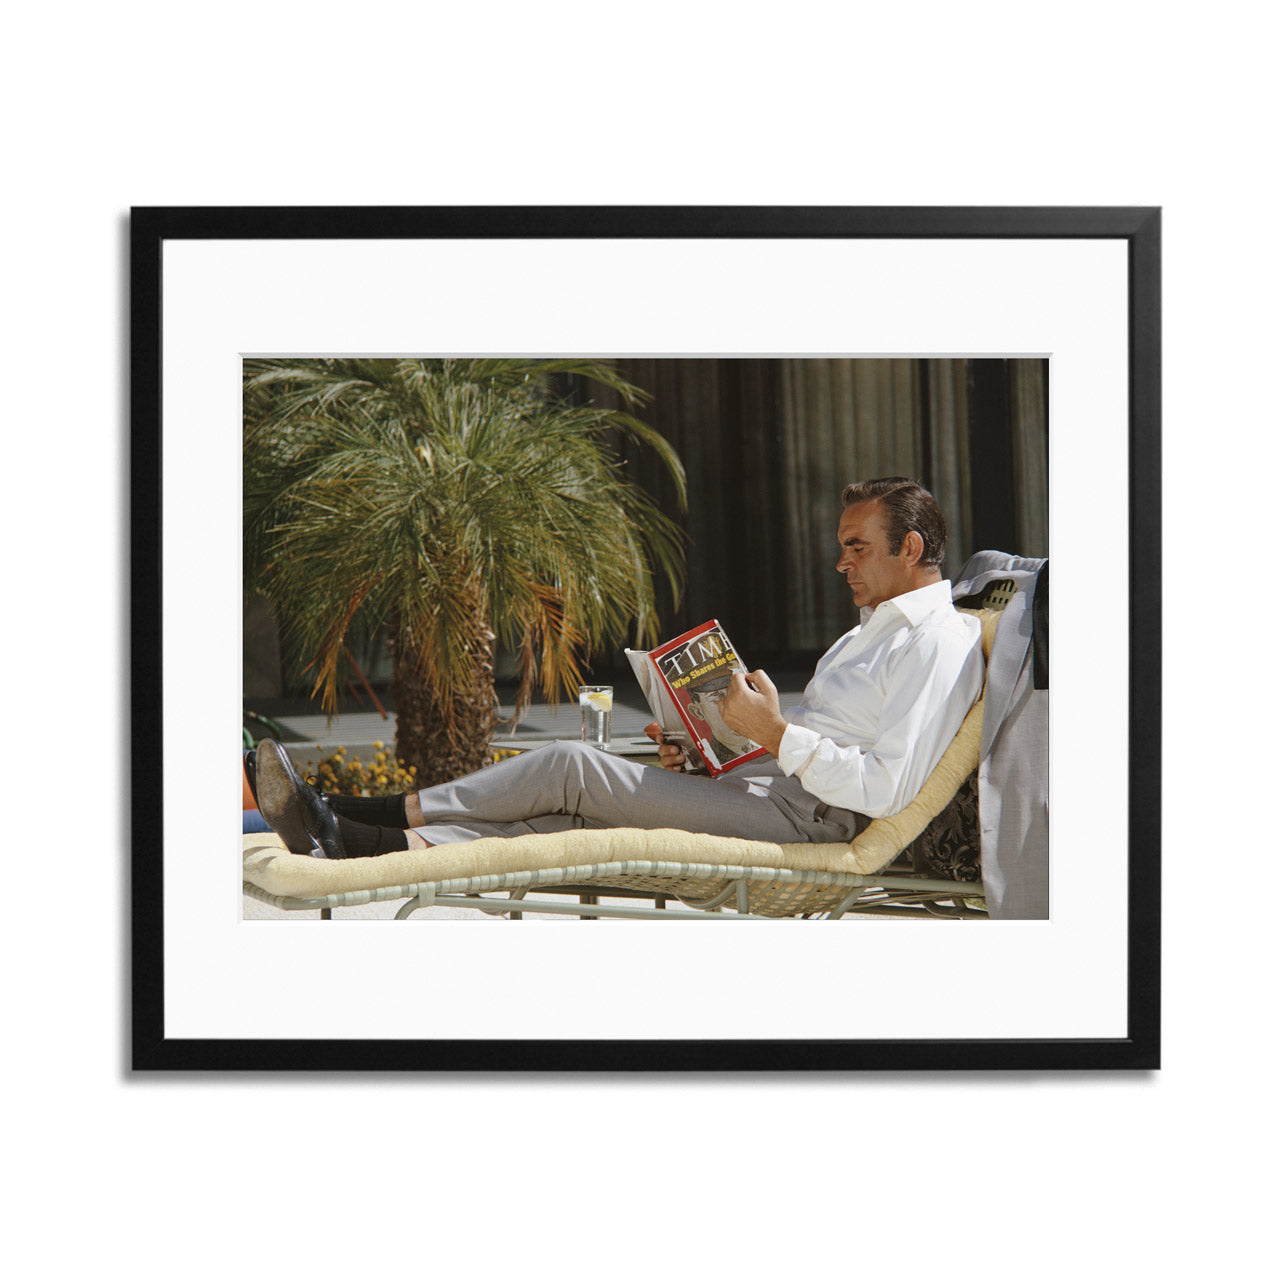 Sean Connery Lounging Framed Print